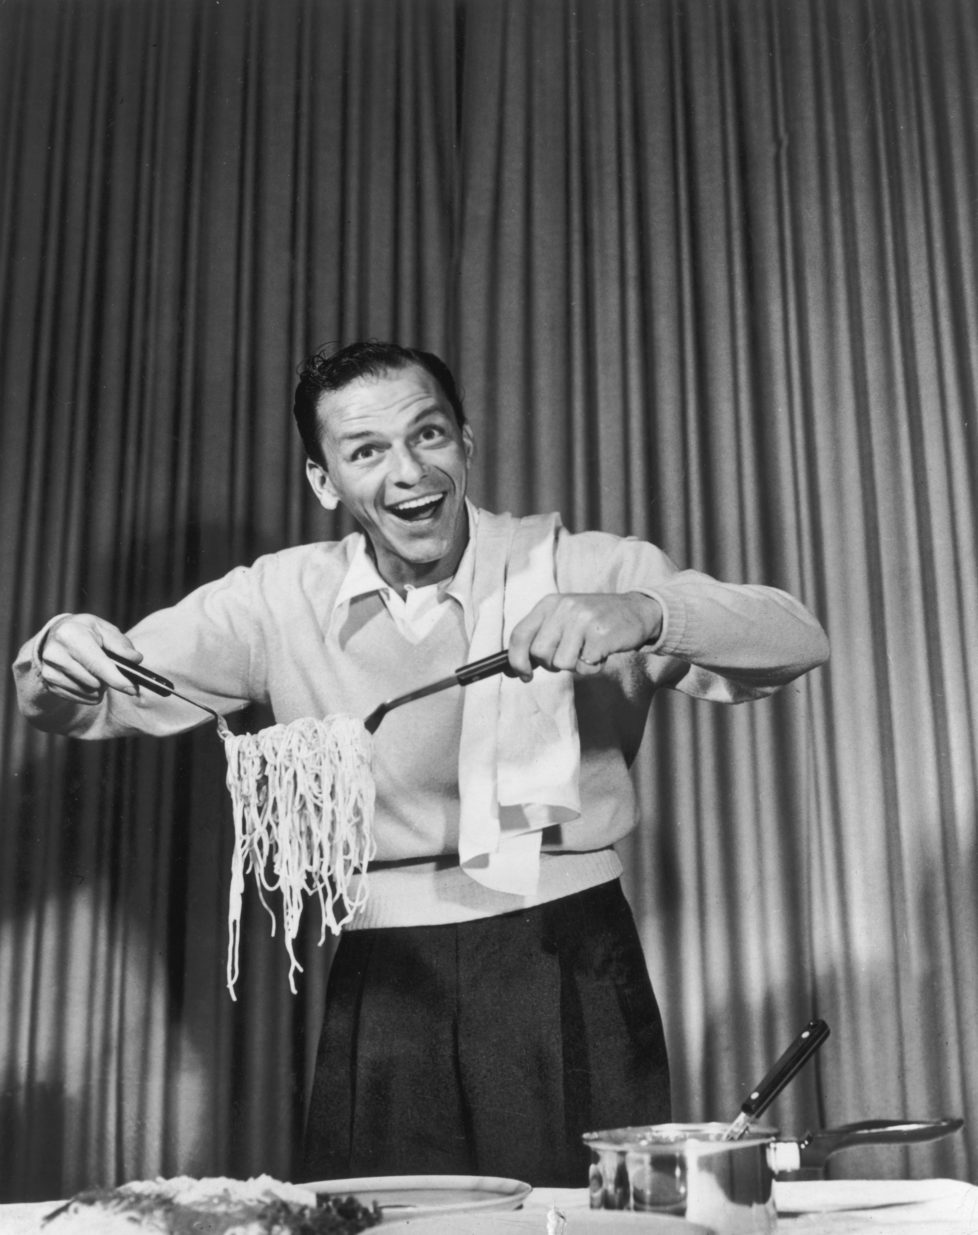 1952: American actor and singer Frank Sinatra (1915 - 1998) clowning around with spaghetti for an EKCO products commercial on the set of CBS-TV's, 'The Frank Sinatra Show.' (Photo by CBS Photo Archive/Getty Images)